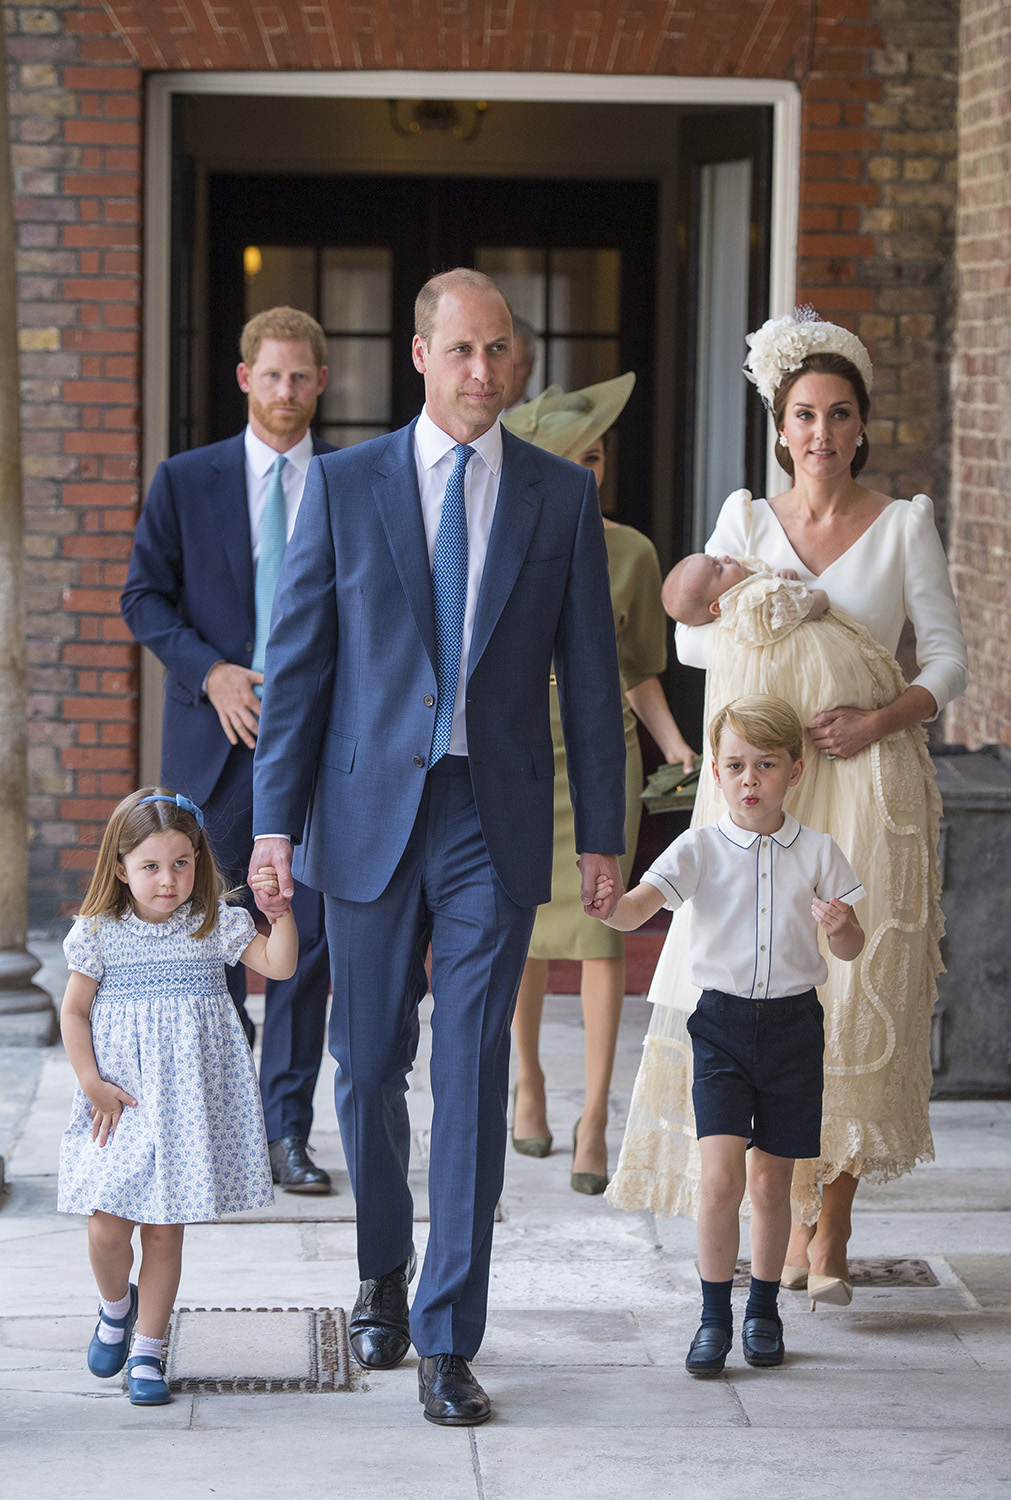 <div class='meta'><div class='origin-logo' data-origin='none'></div><span class='caption-text' data-credit='Dominic Lipinski/Pool Photo via AP'>Princess Charlotte and Prince George hold the hands of their father Prince William while Kate, Duchess of Cambridge holds Prince Louis as they arrive for his christening service.</span></div>